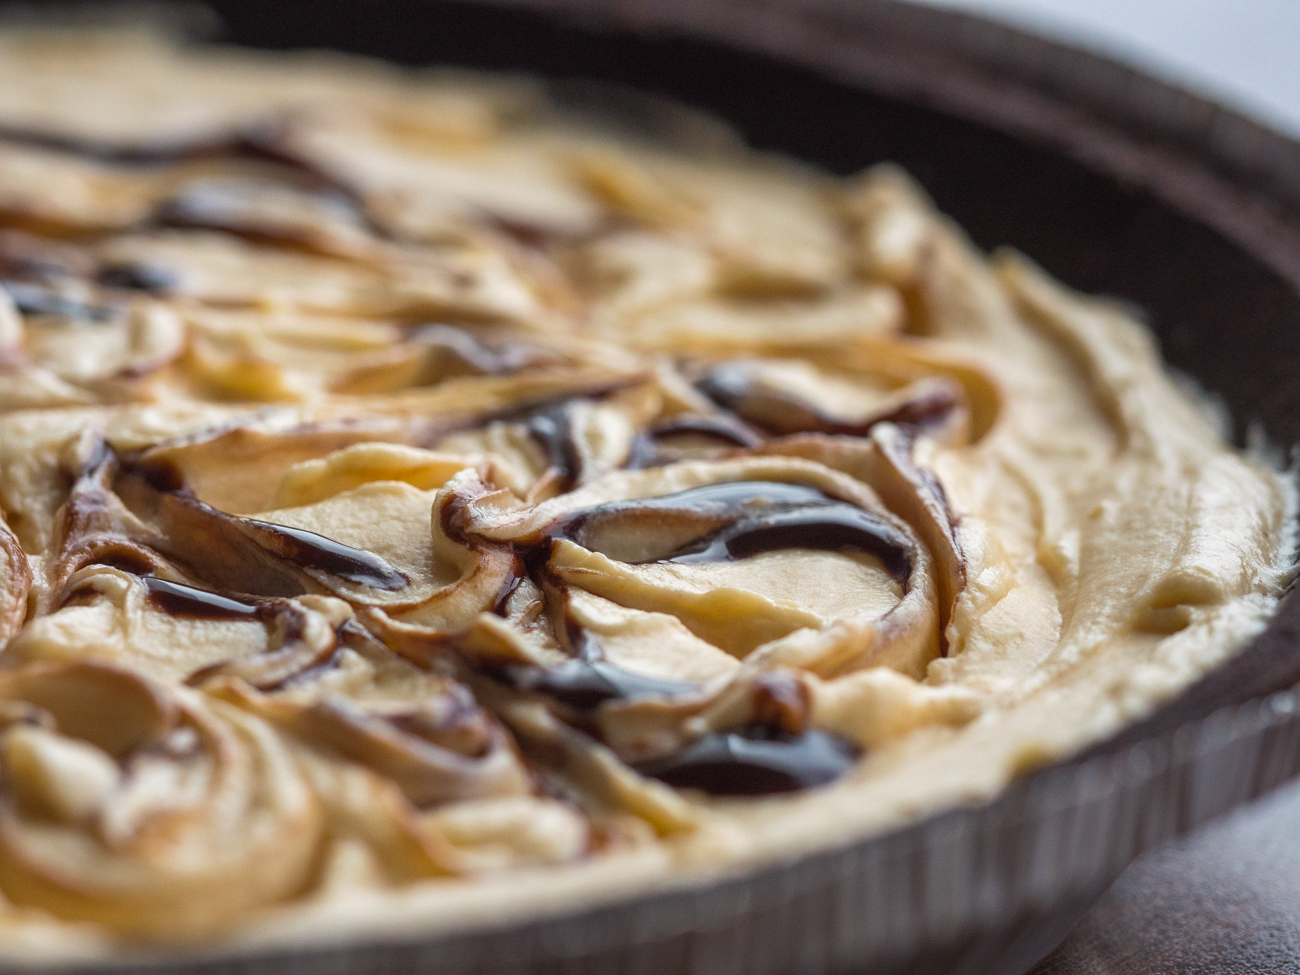 Swirled-Peanut-Butter-Fudge-Pie-Horizontal-2-of-16